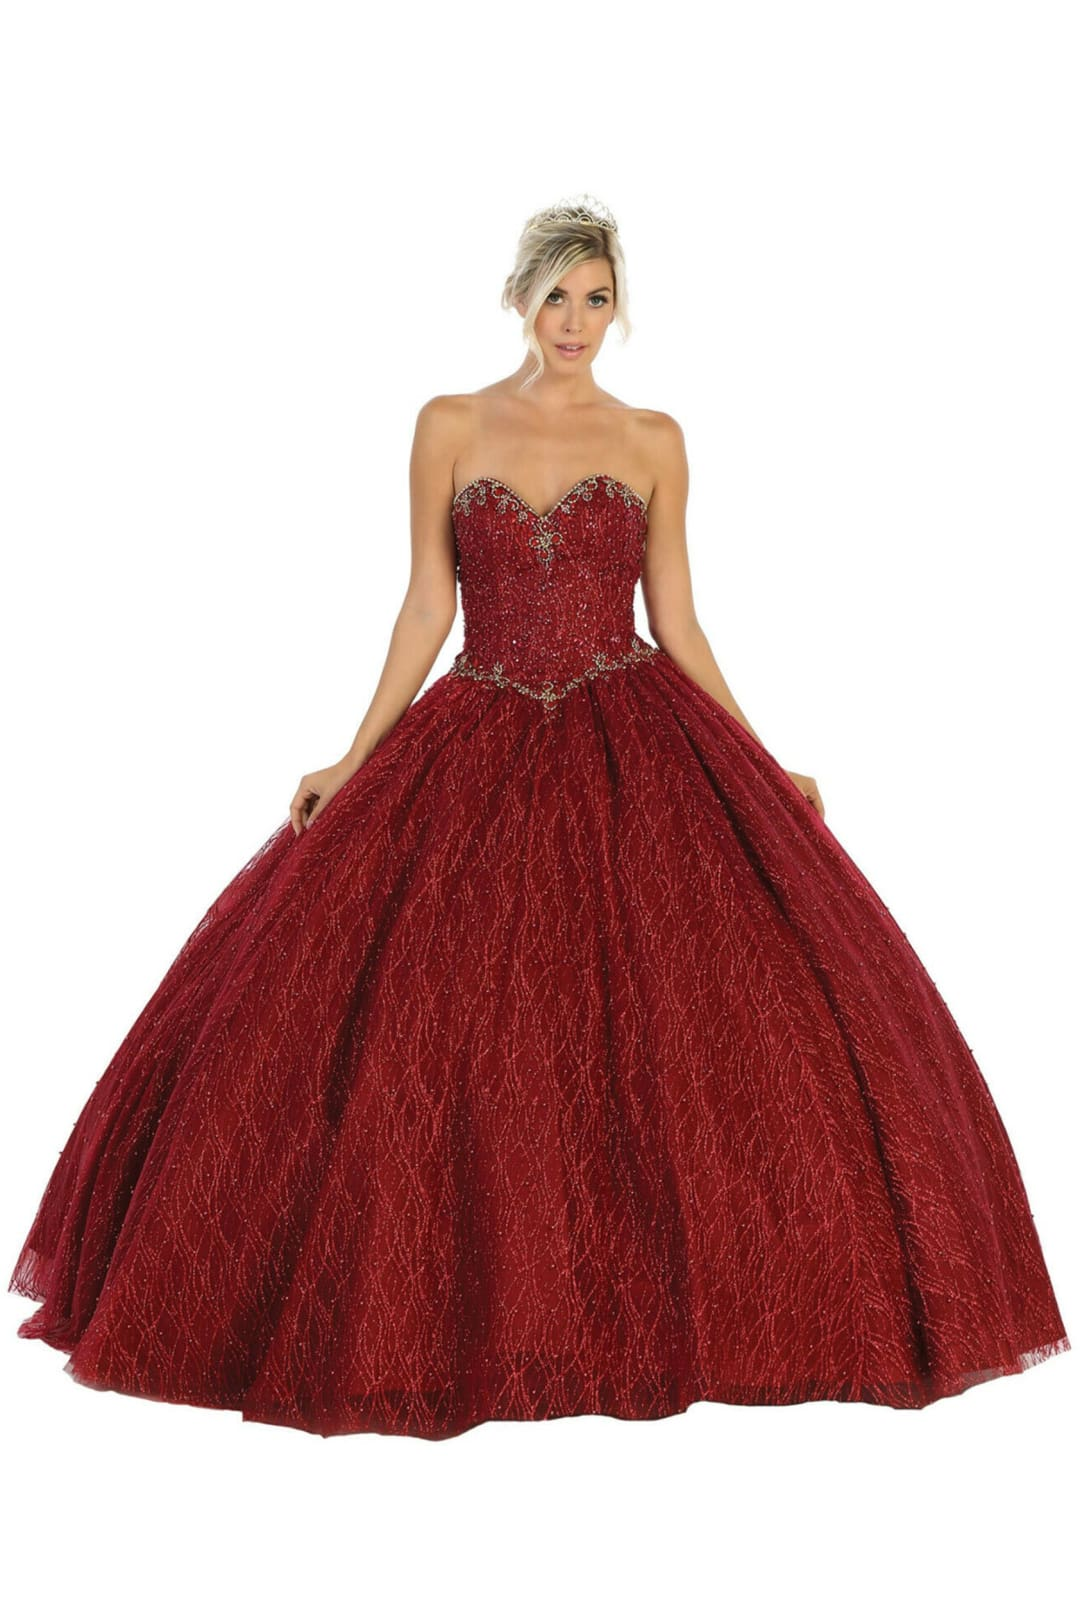 Sweetheart Ball Gown - Burgundy / 2